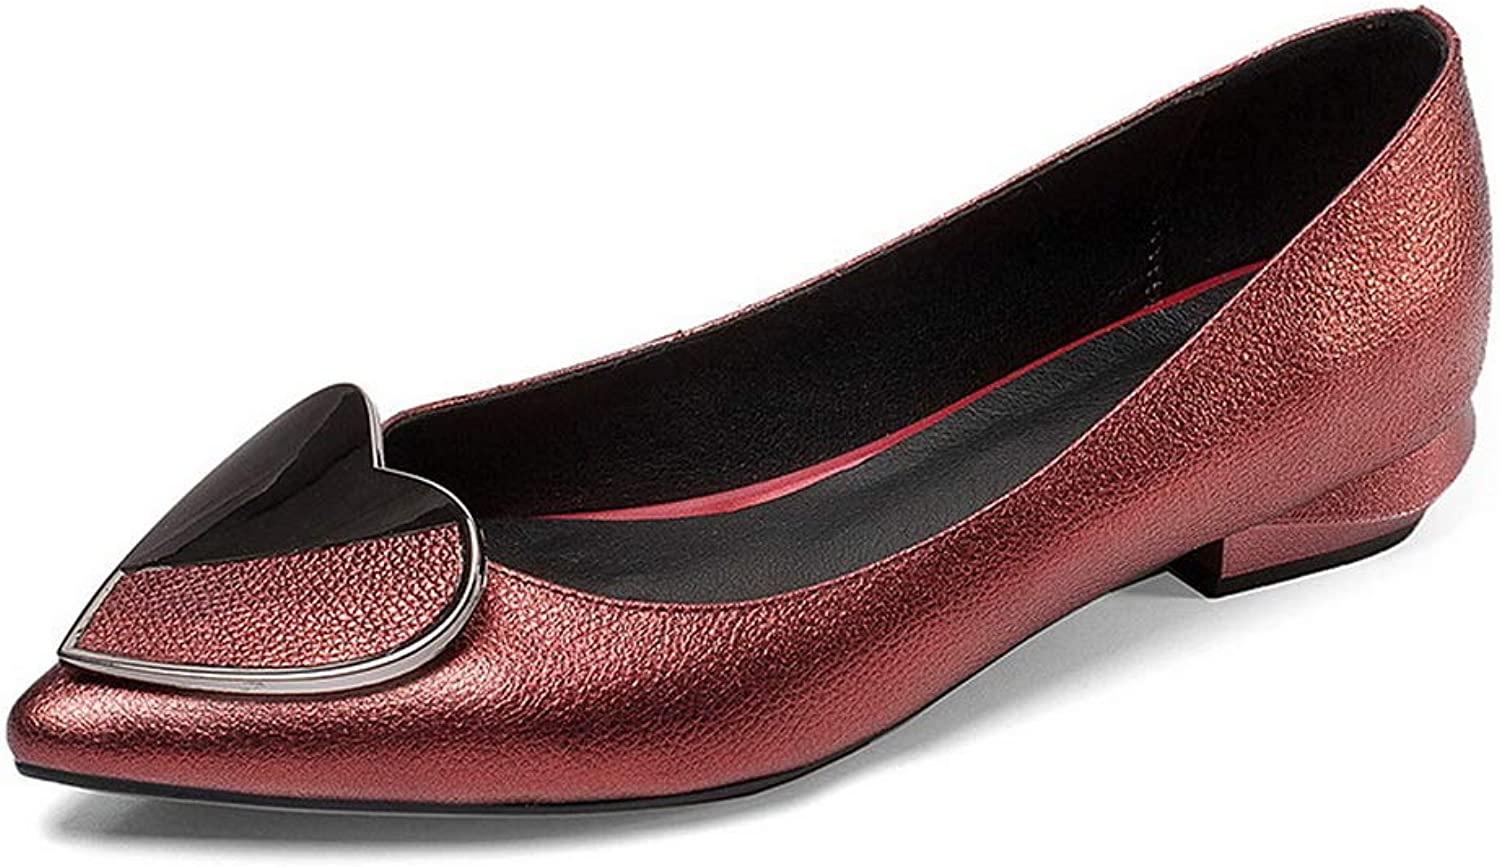 AN Womens Square Heels Pointed-Toe Cow Leather Pumps shoes DGU00909